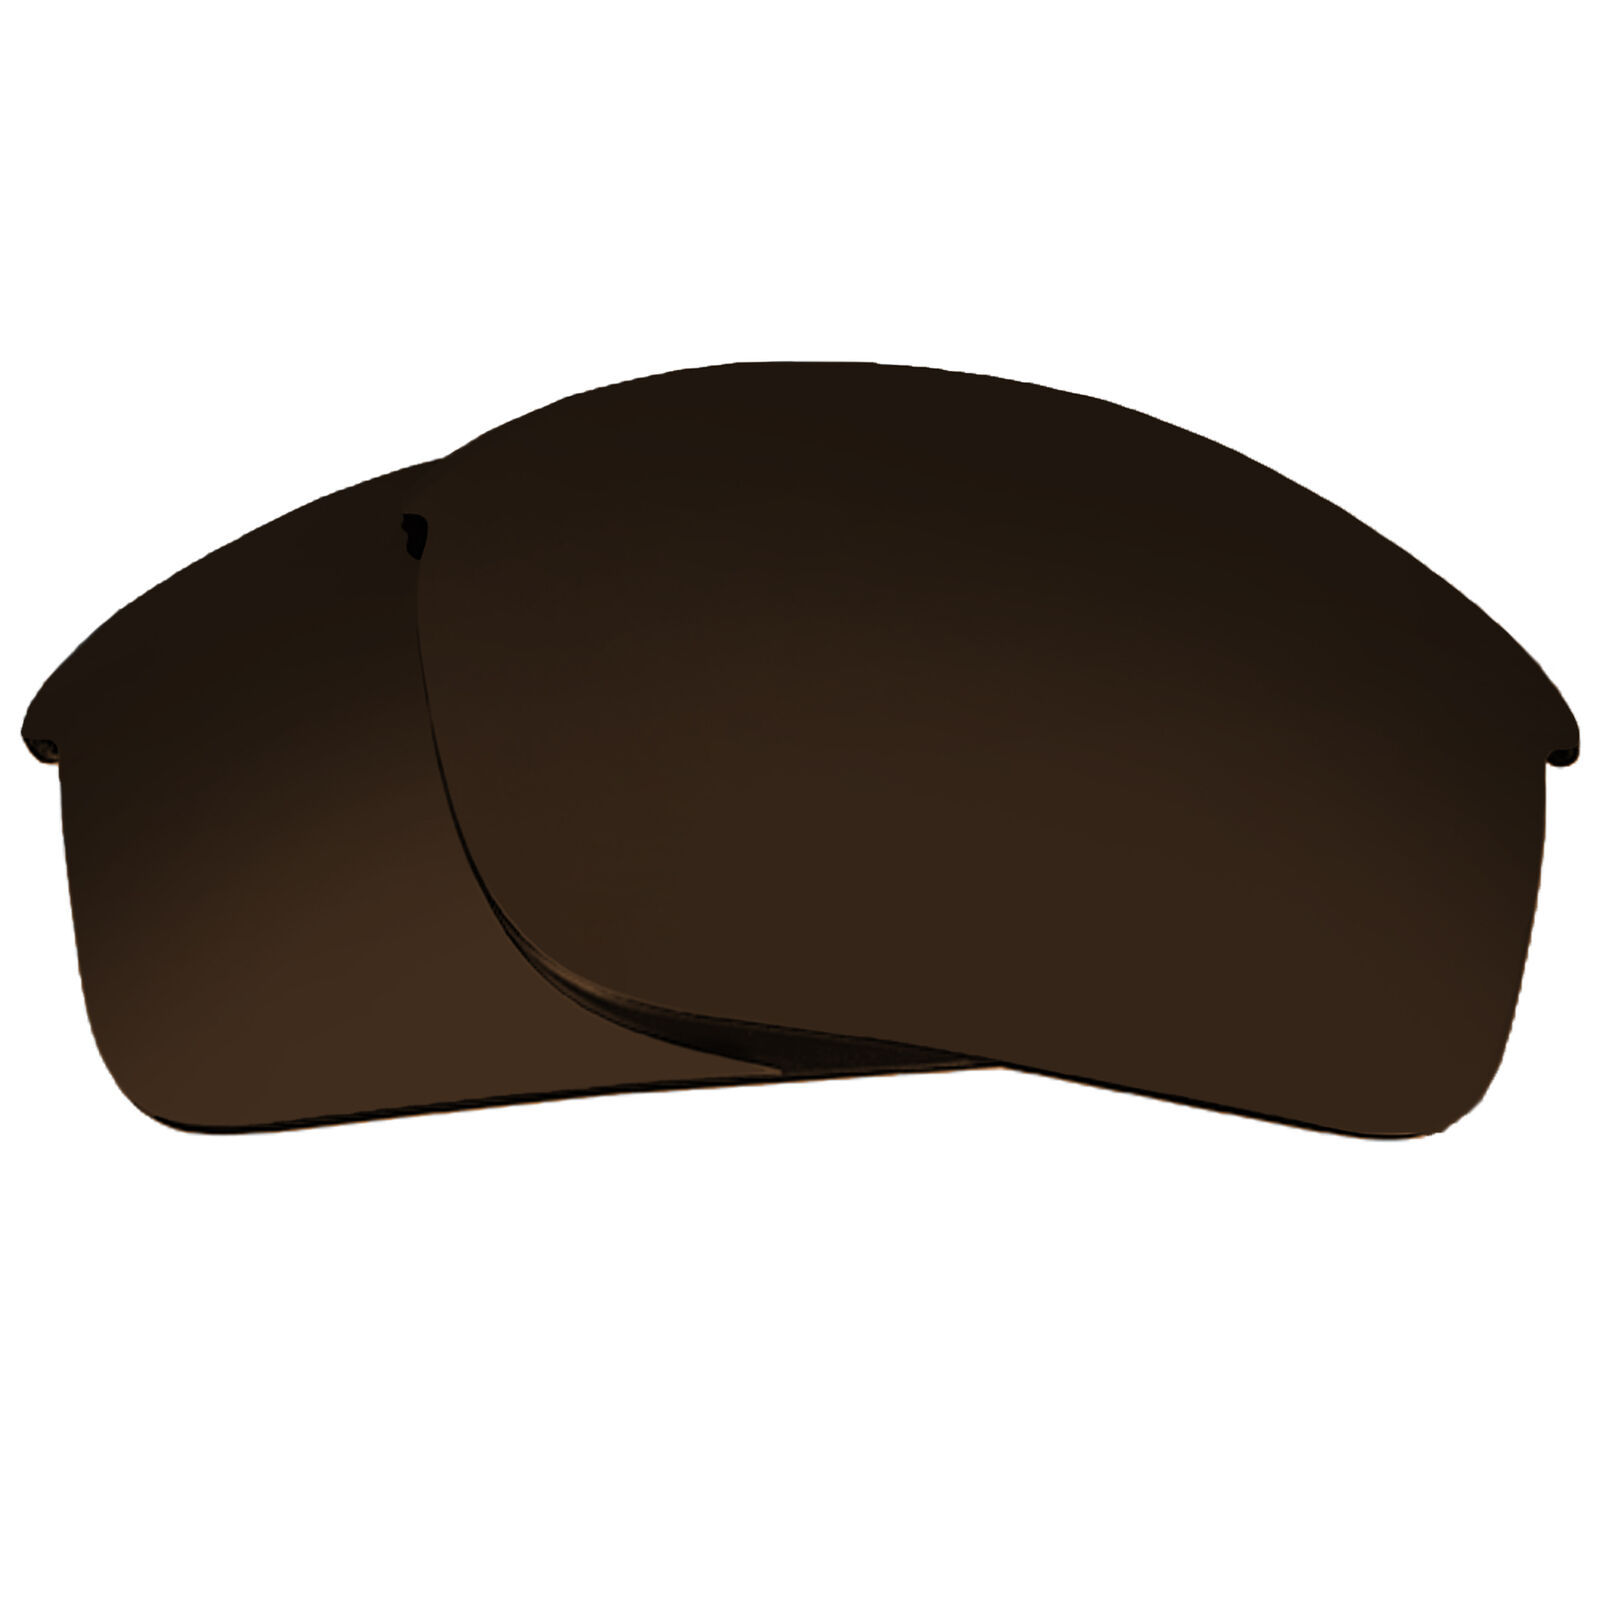 Primary image for Replacement Lenses for-Oakley Bottlecap Sunglasses Anti-Scratch Dark Brown